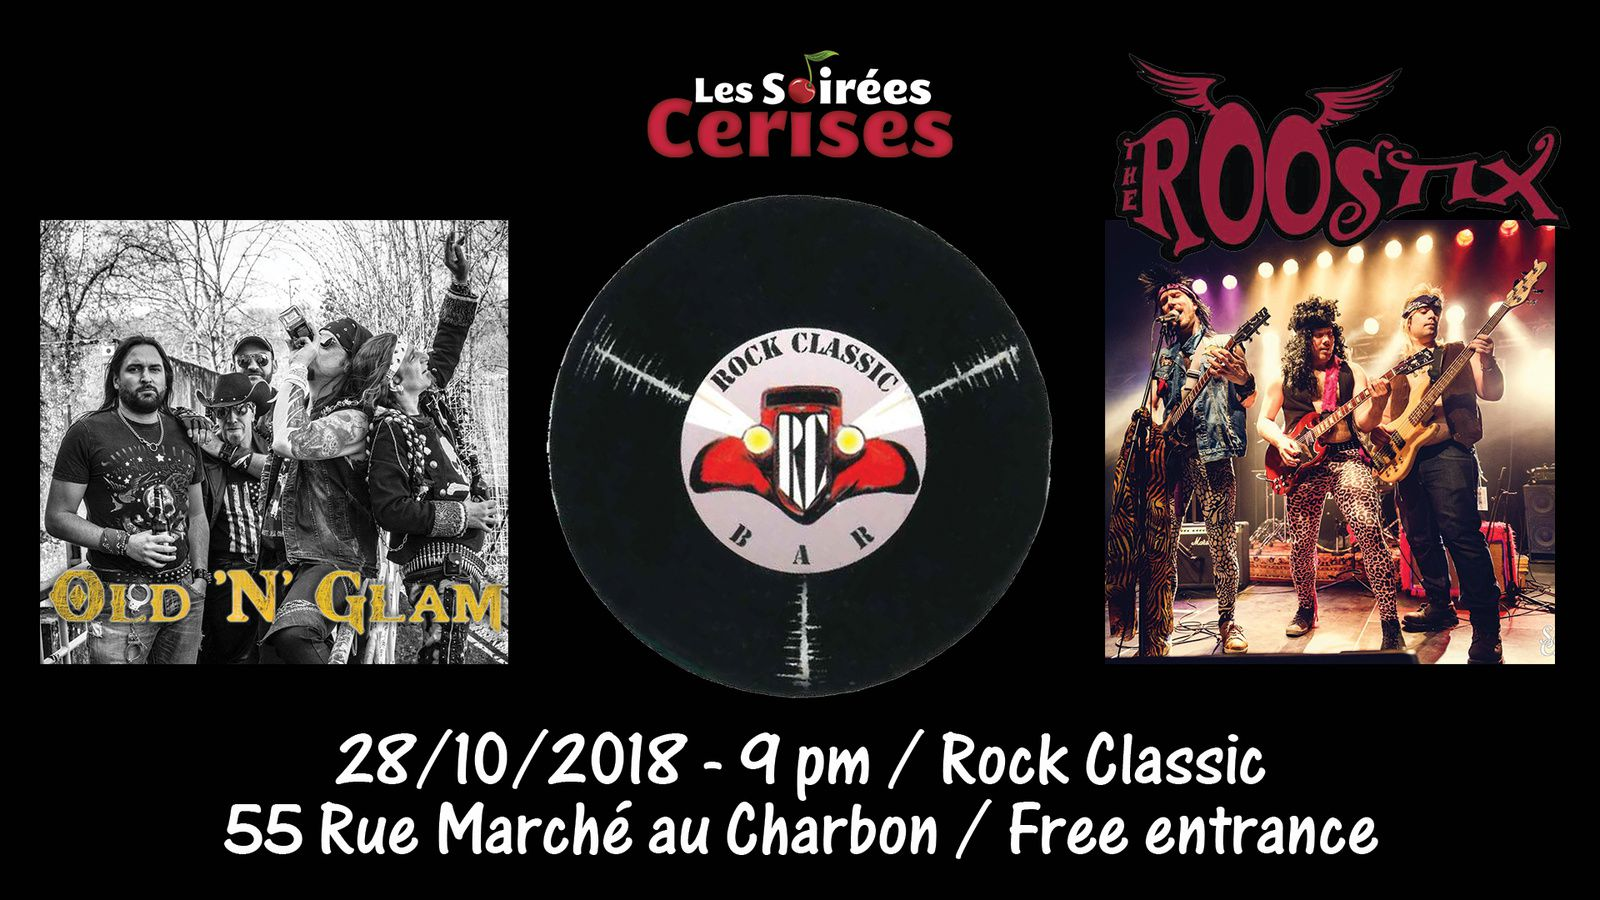 ▶ Old 'N' Glam (F) + The Roostix @ Rock Classic - 20/10/2018 - 21h00 - Entrée gratuite !